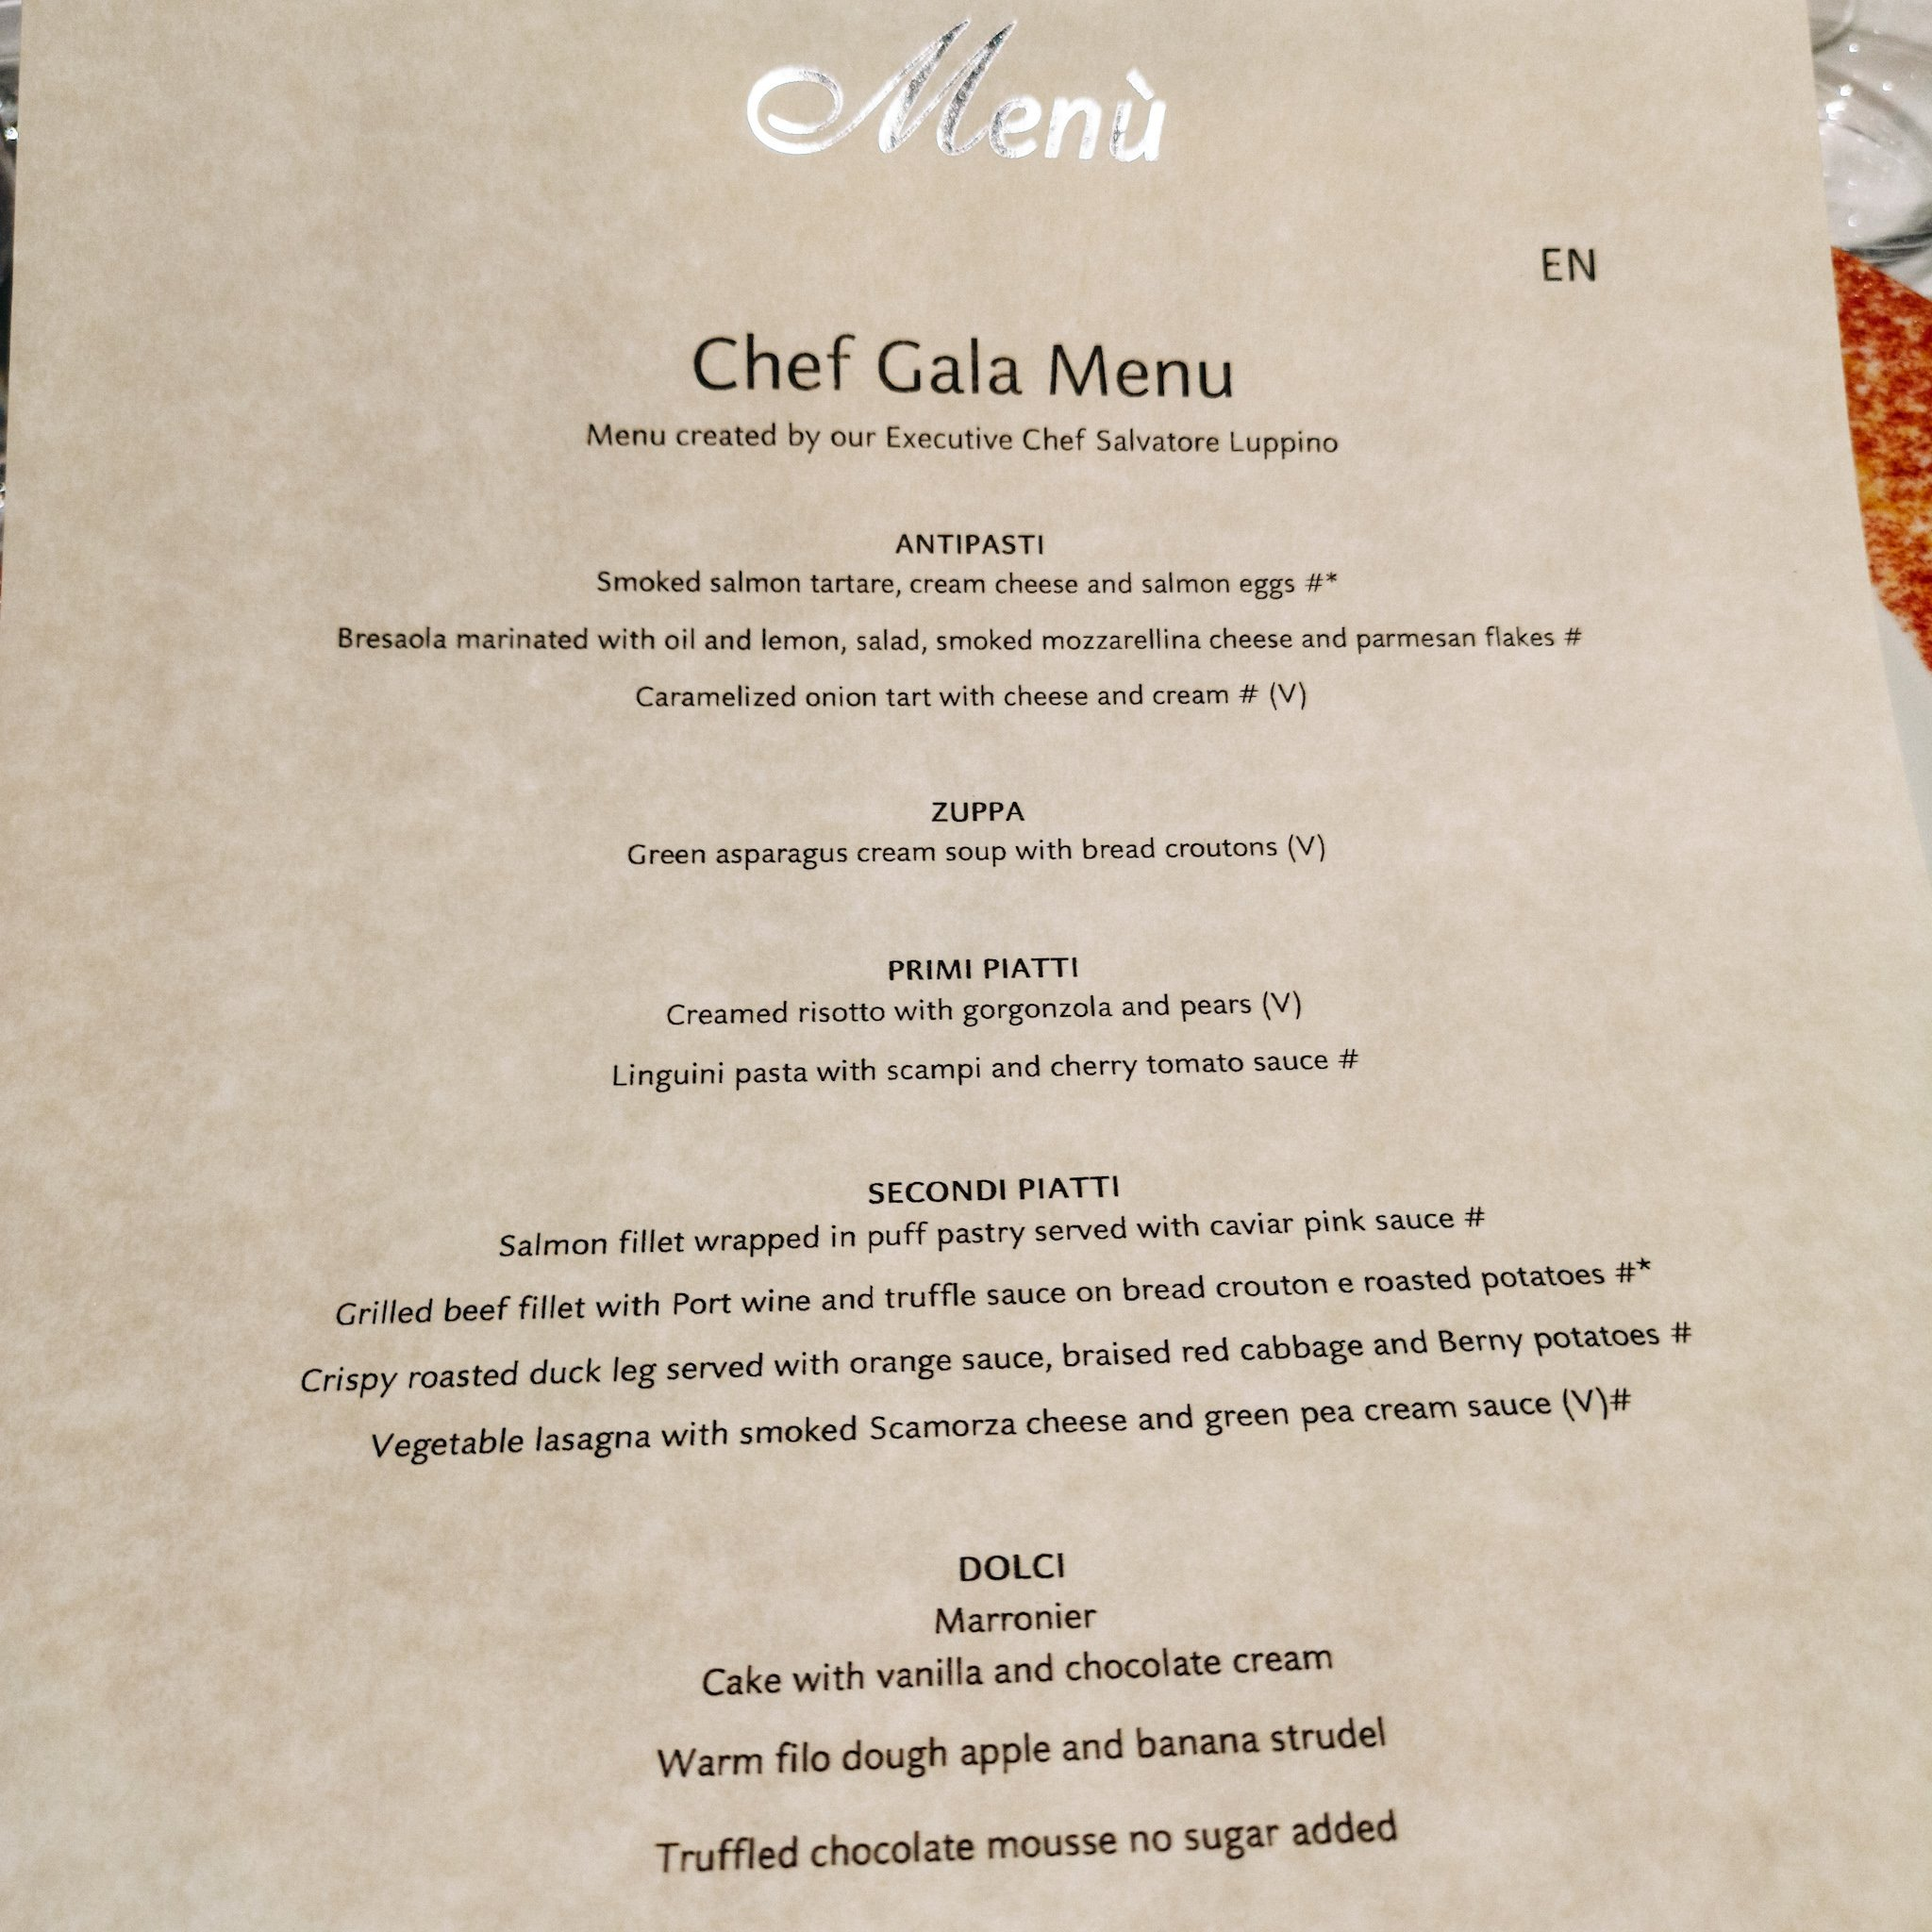 Costa Cruise Menu